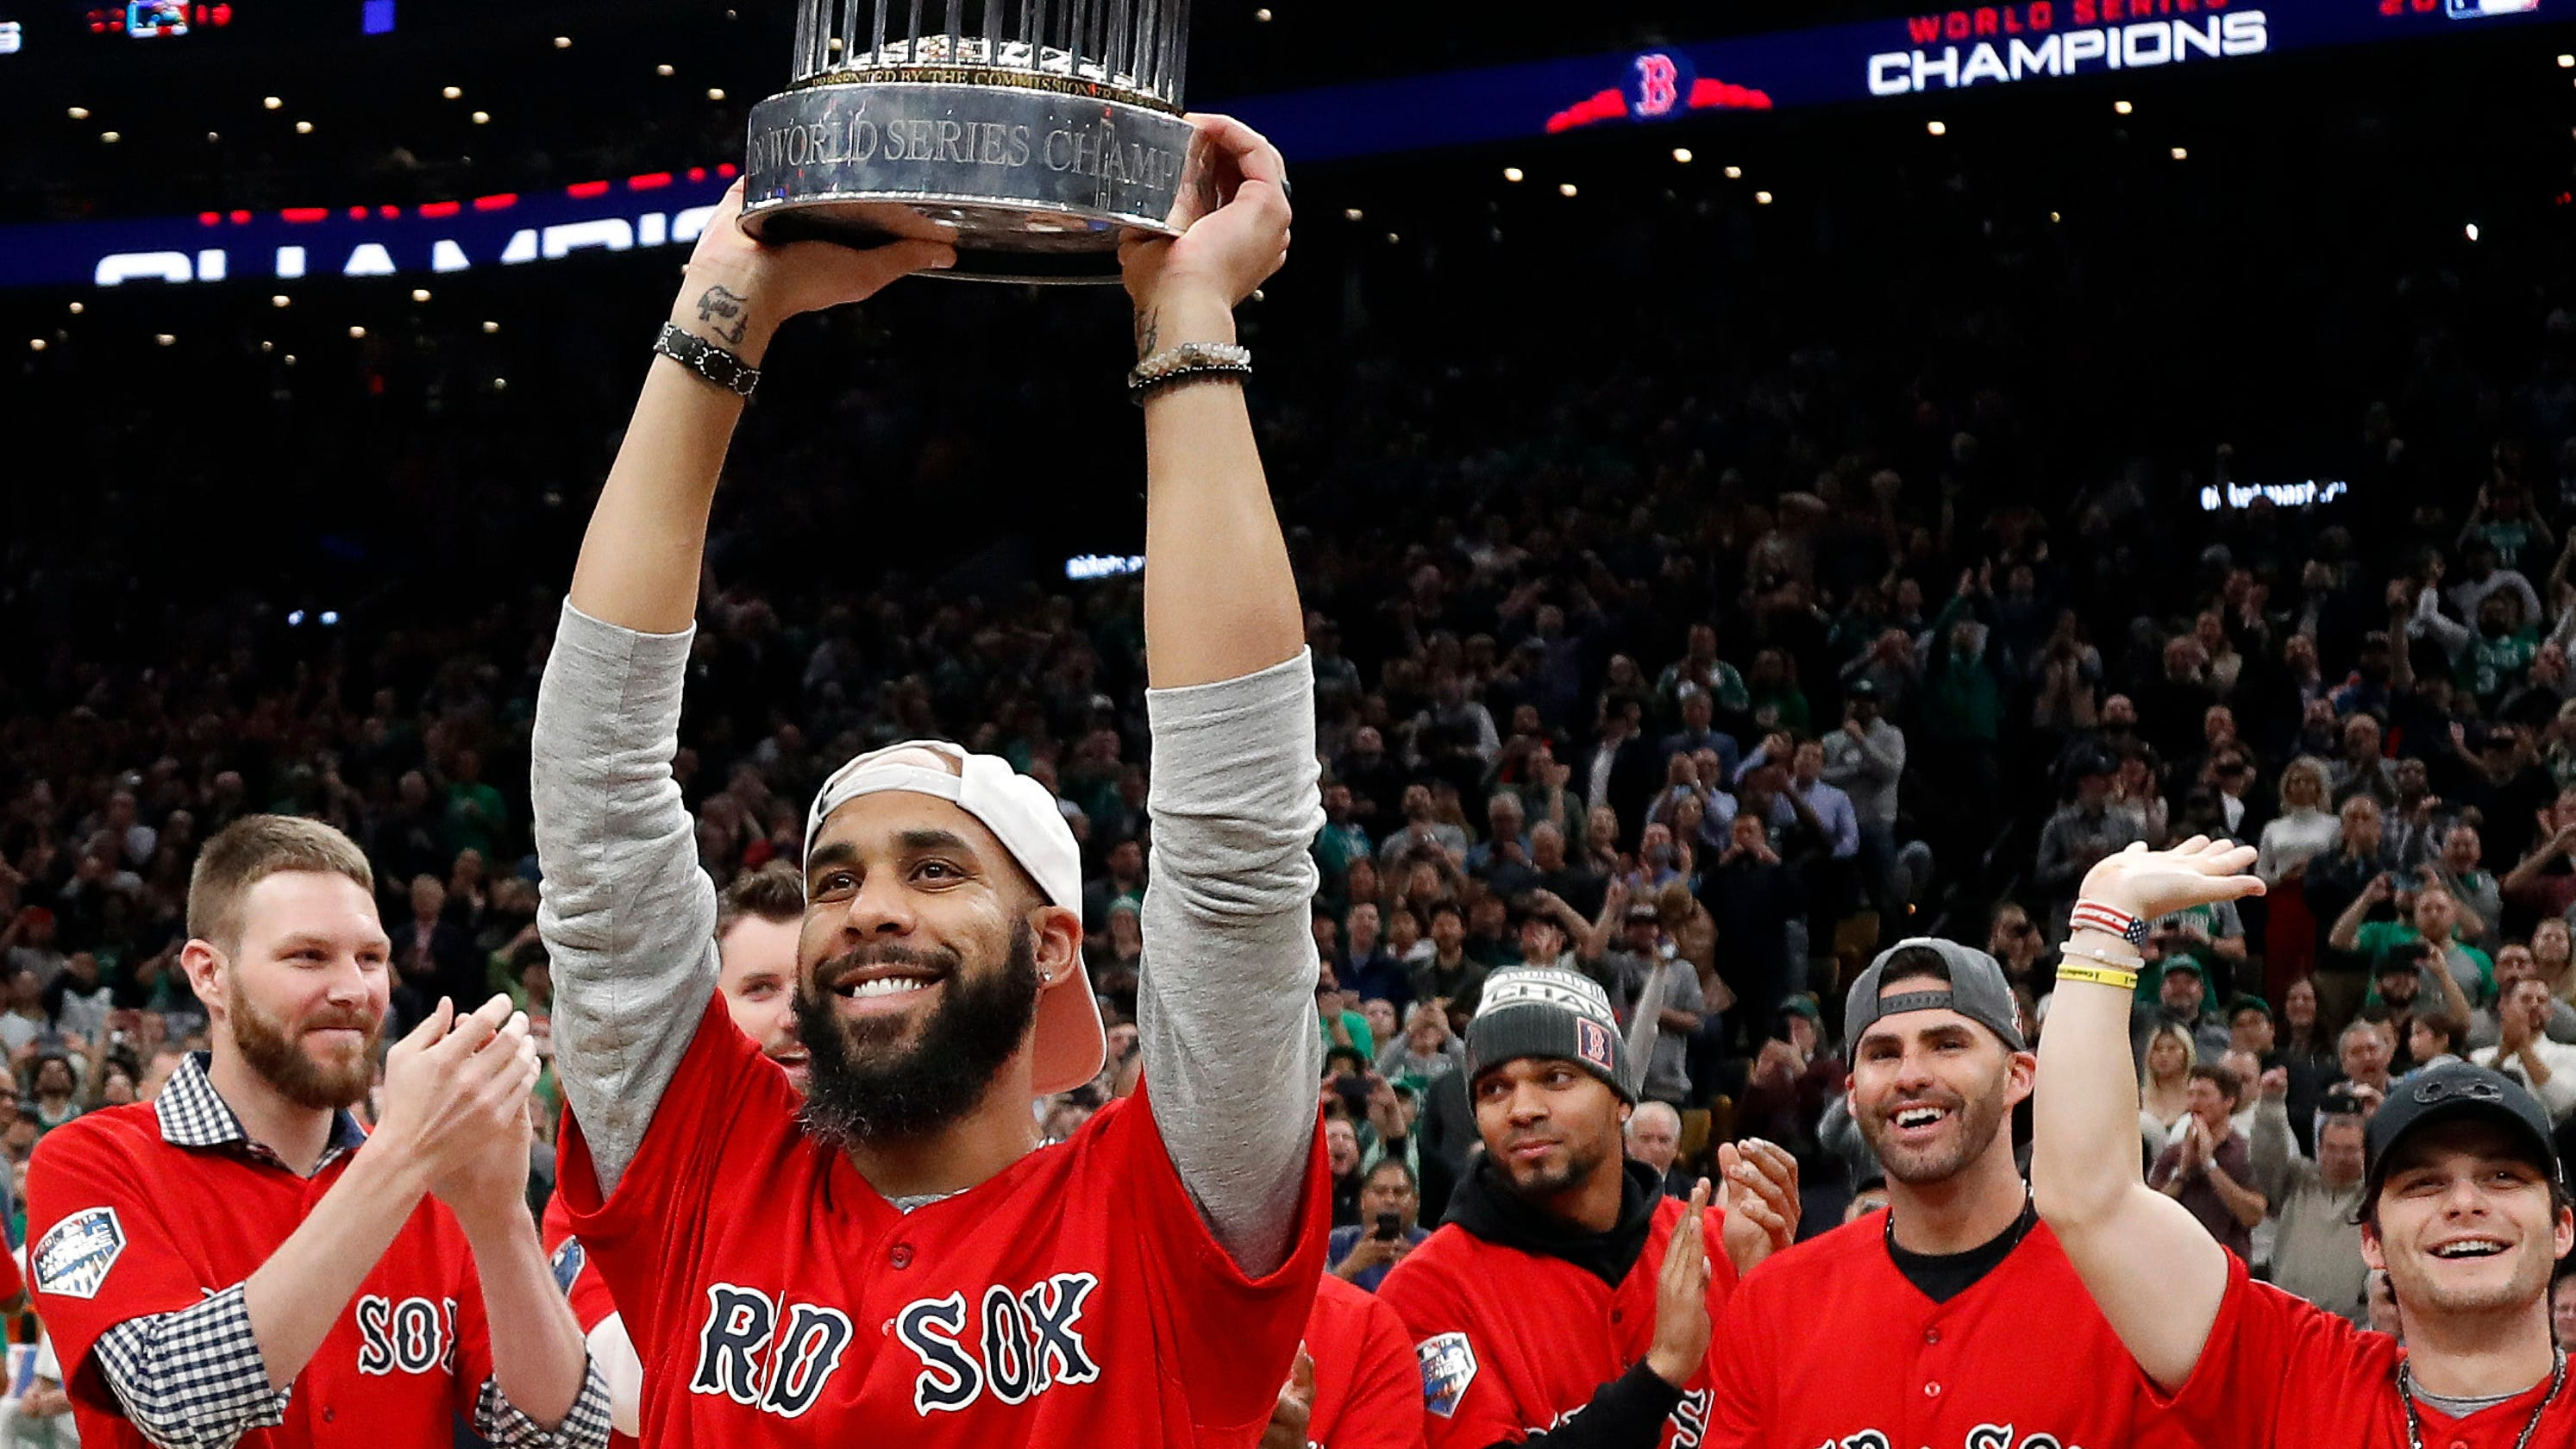 Red Sox: 2018 World Series champions face historically